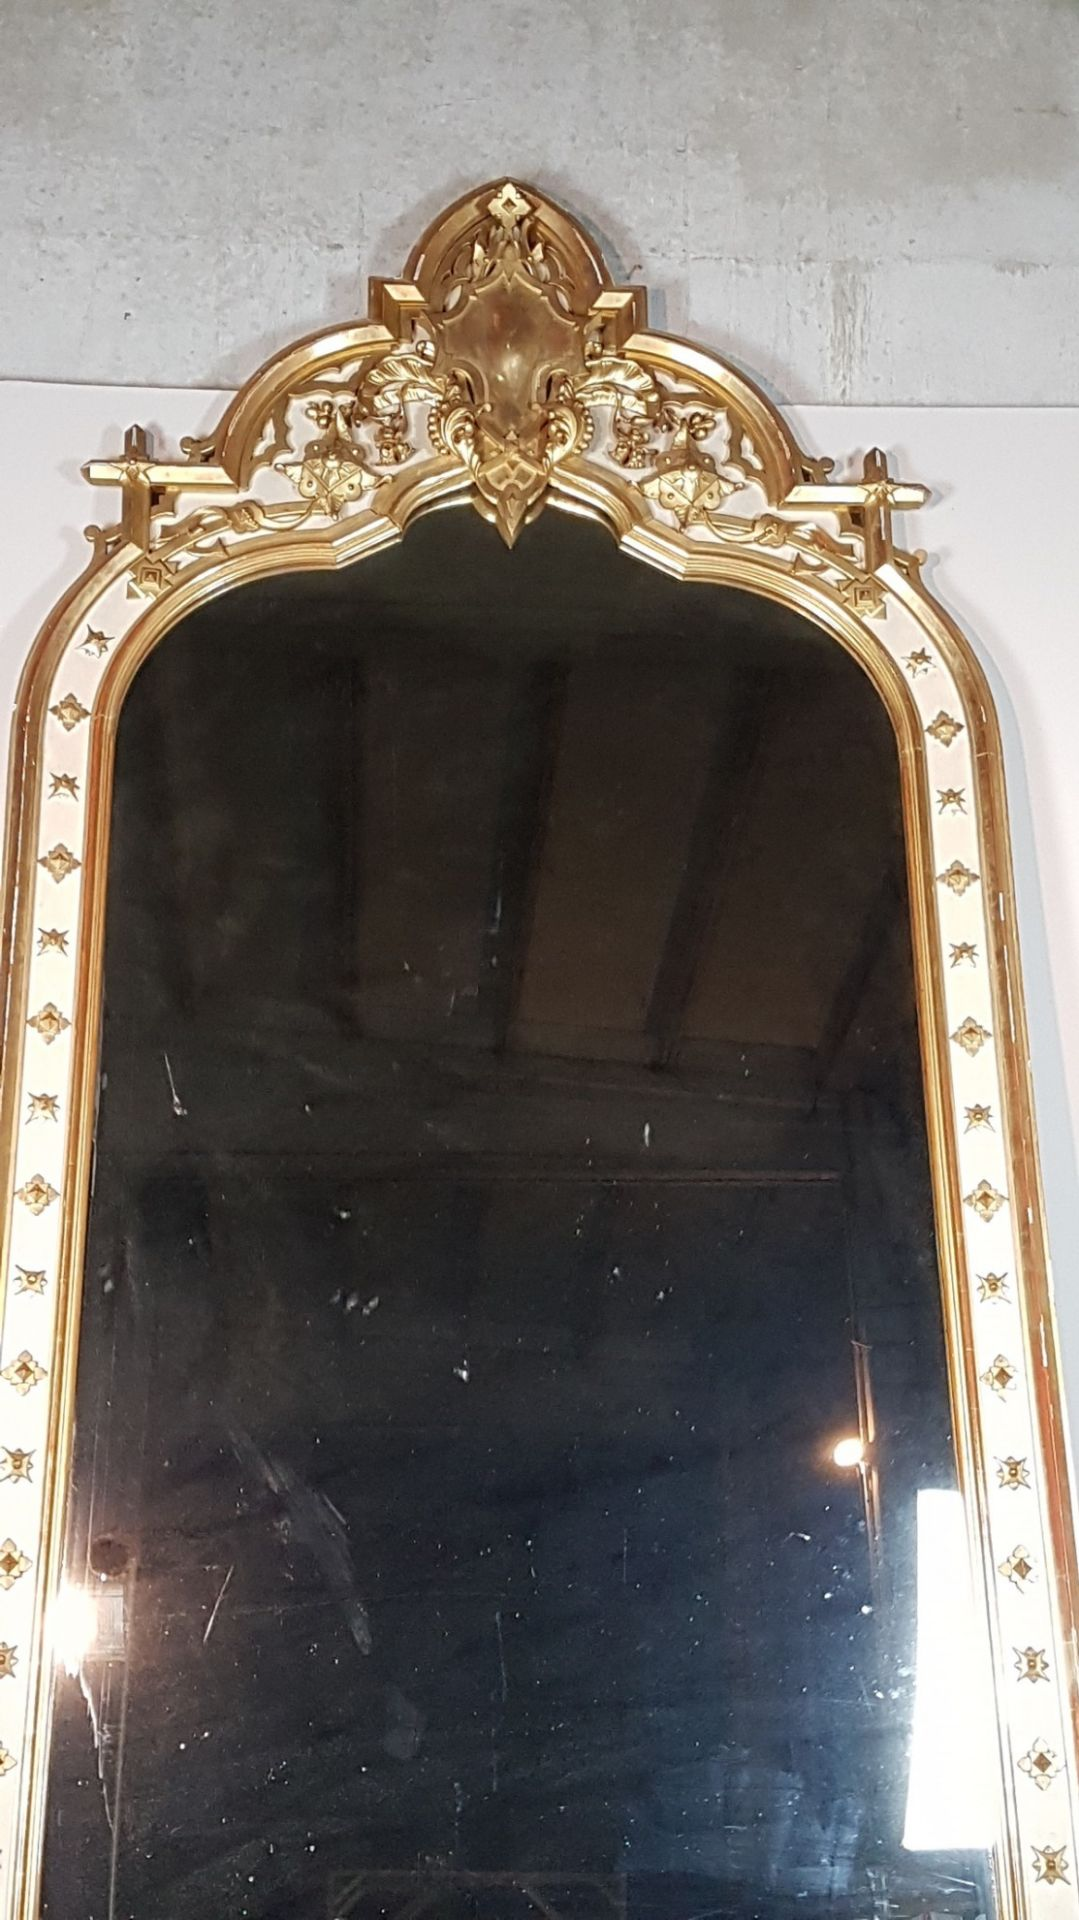 19th Century Italian Baroque Style Carved Lacquered Large Golden Wood Mirror